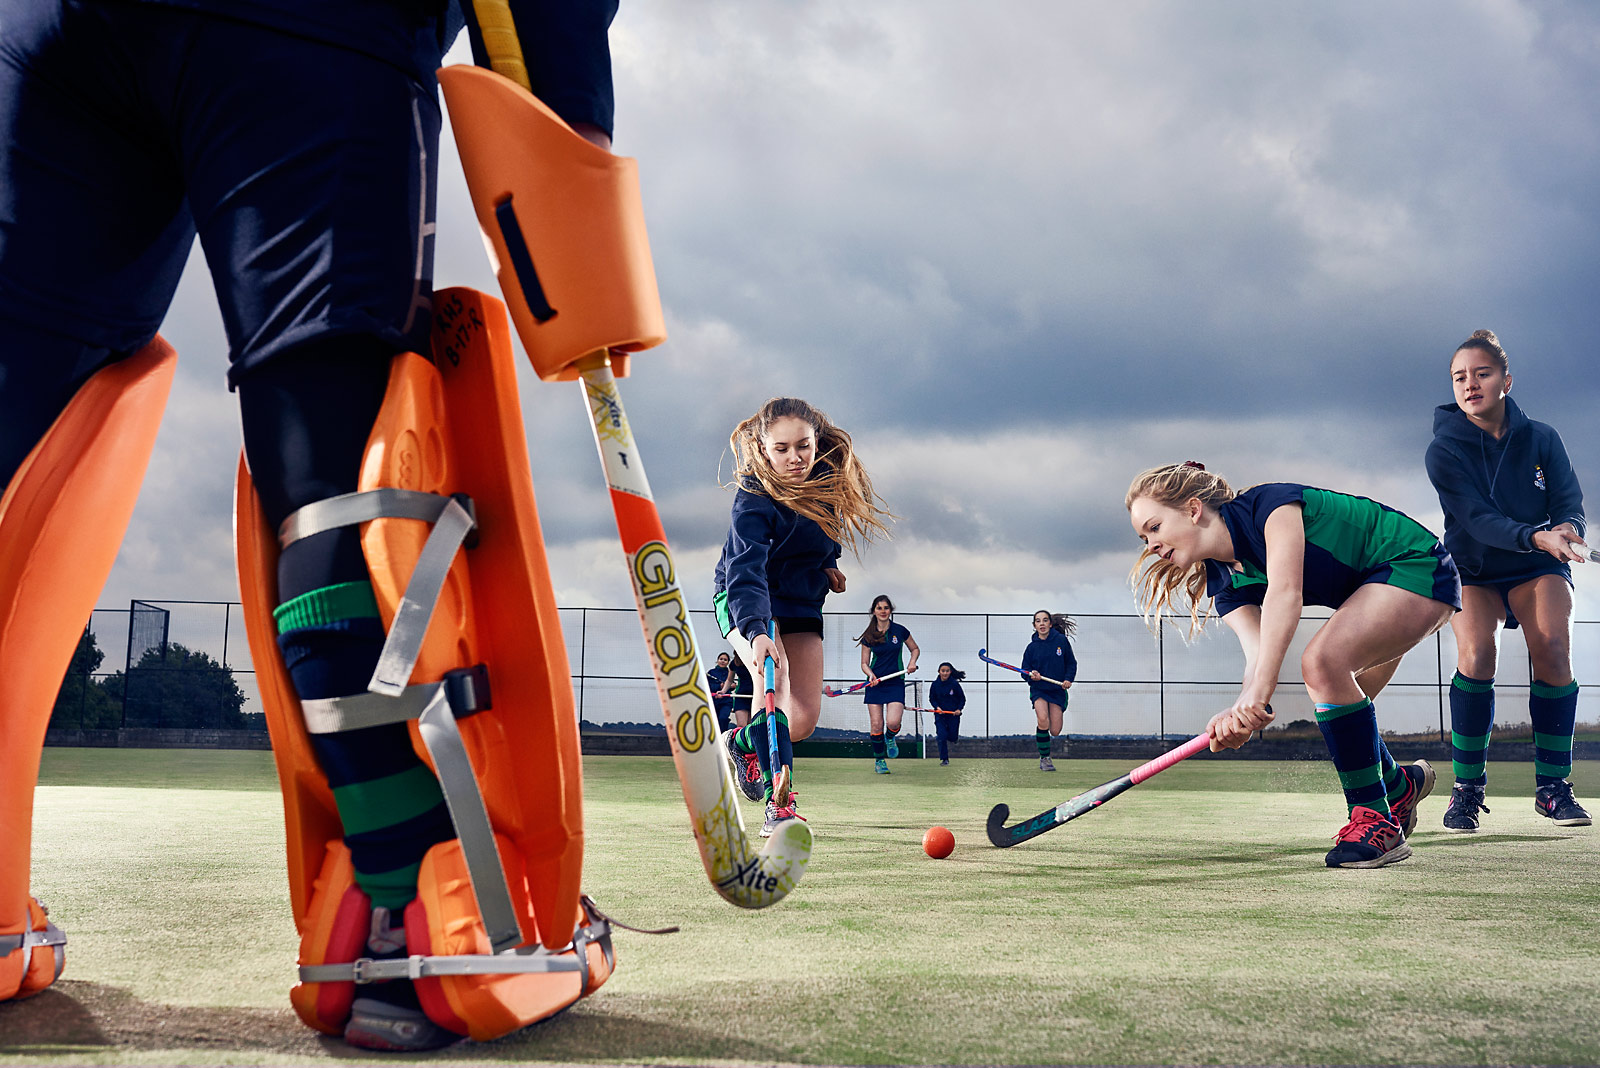 Girls hockey at the Royal Hospital School